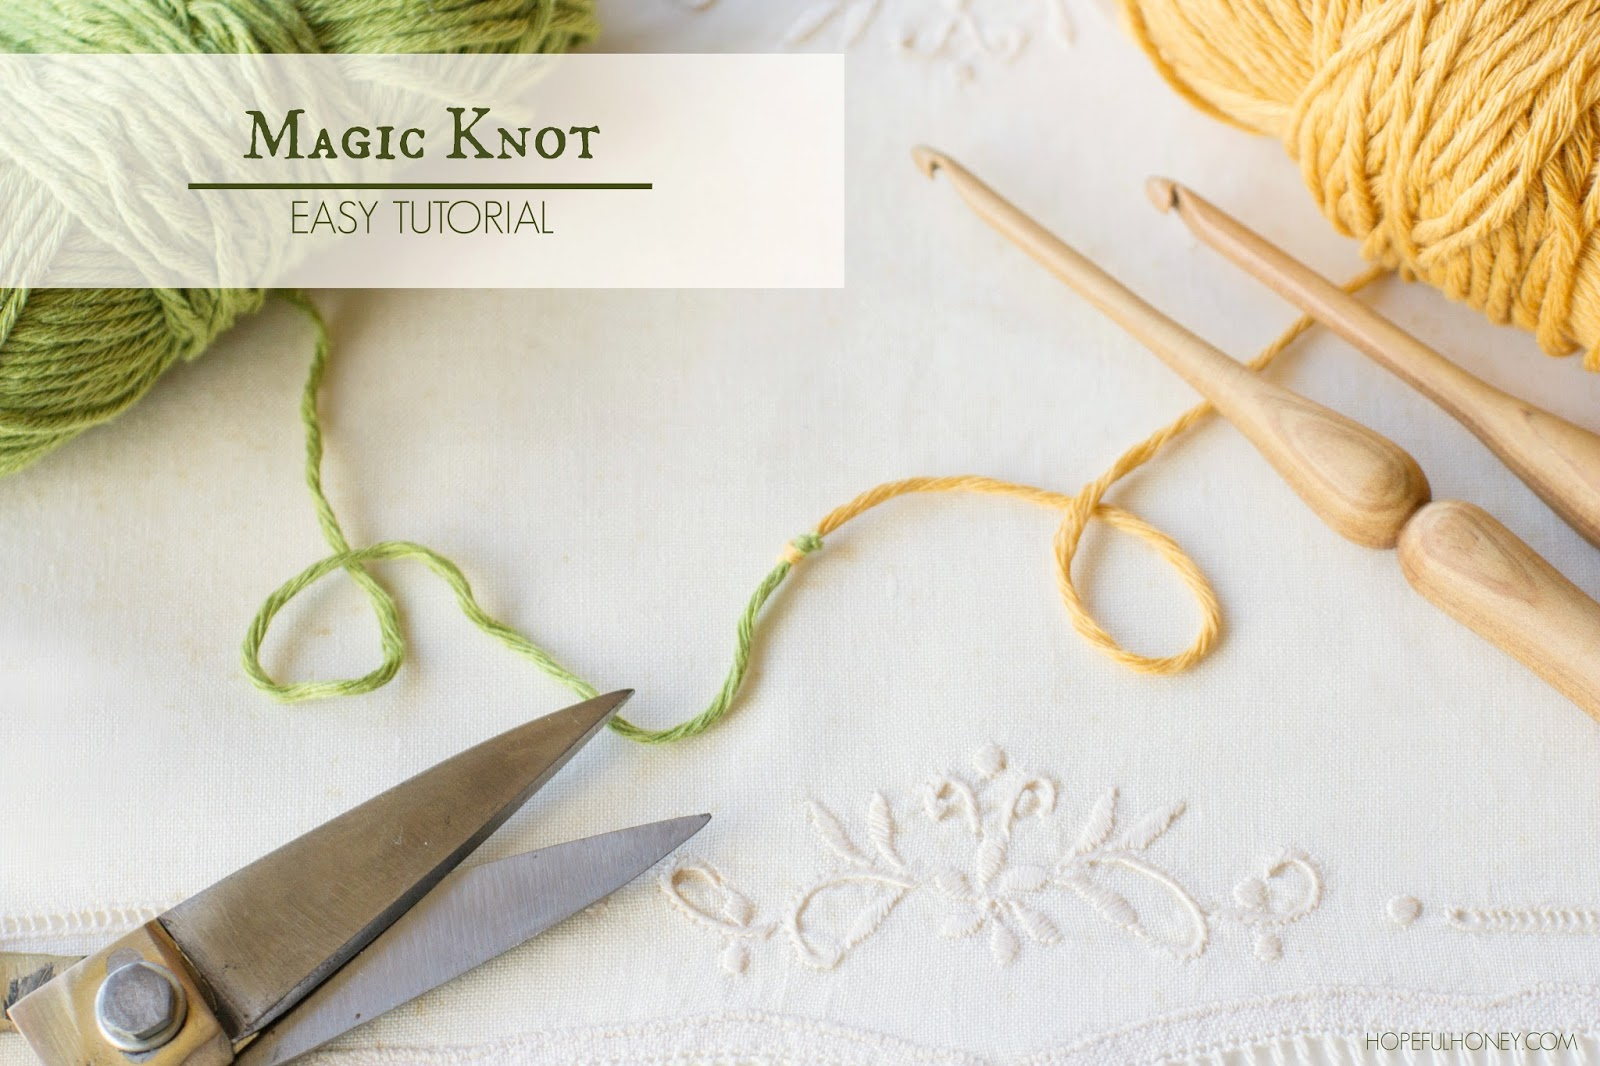 ... , Crochet, Create: How To: The Magic Knot (Yarn Join) - Easy Tutorial